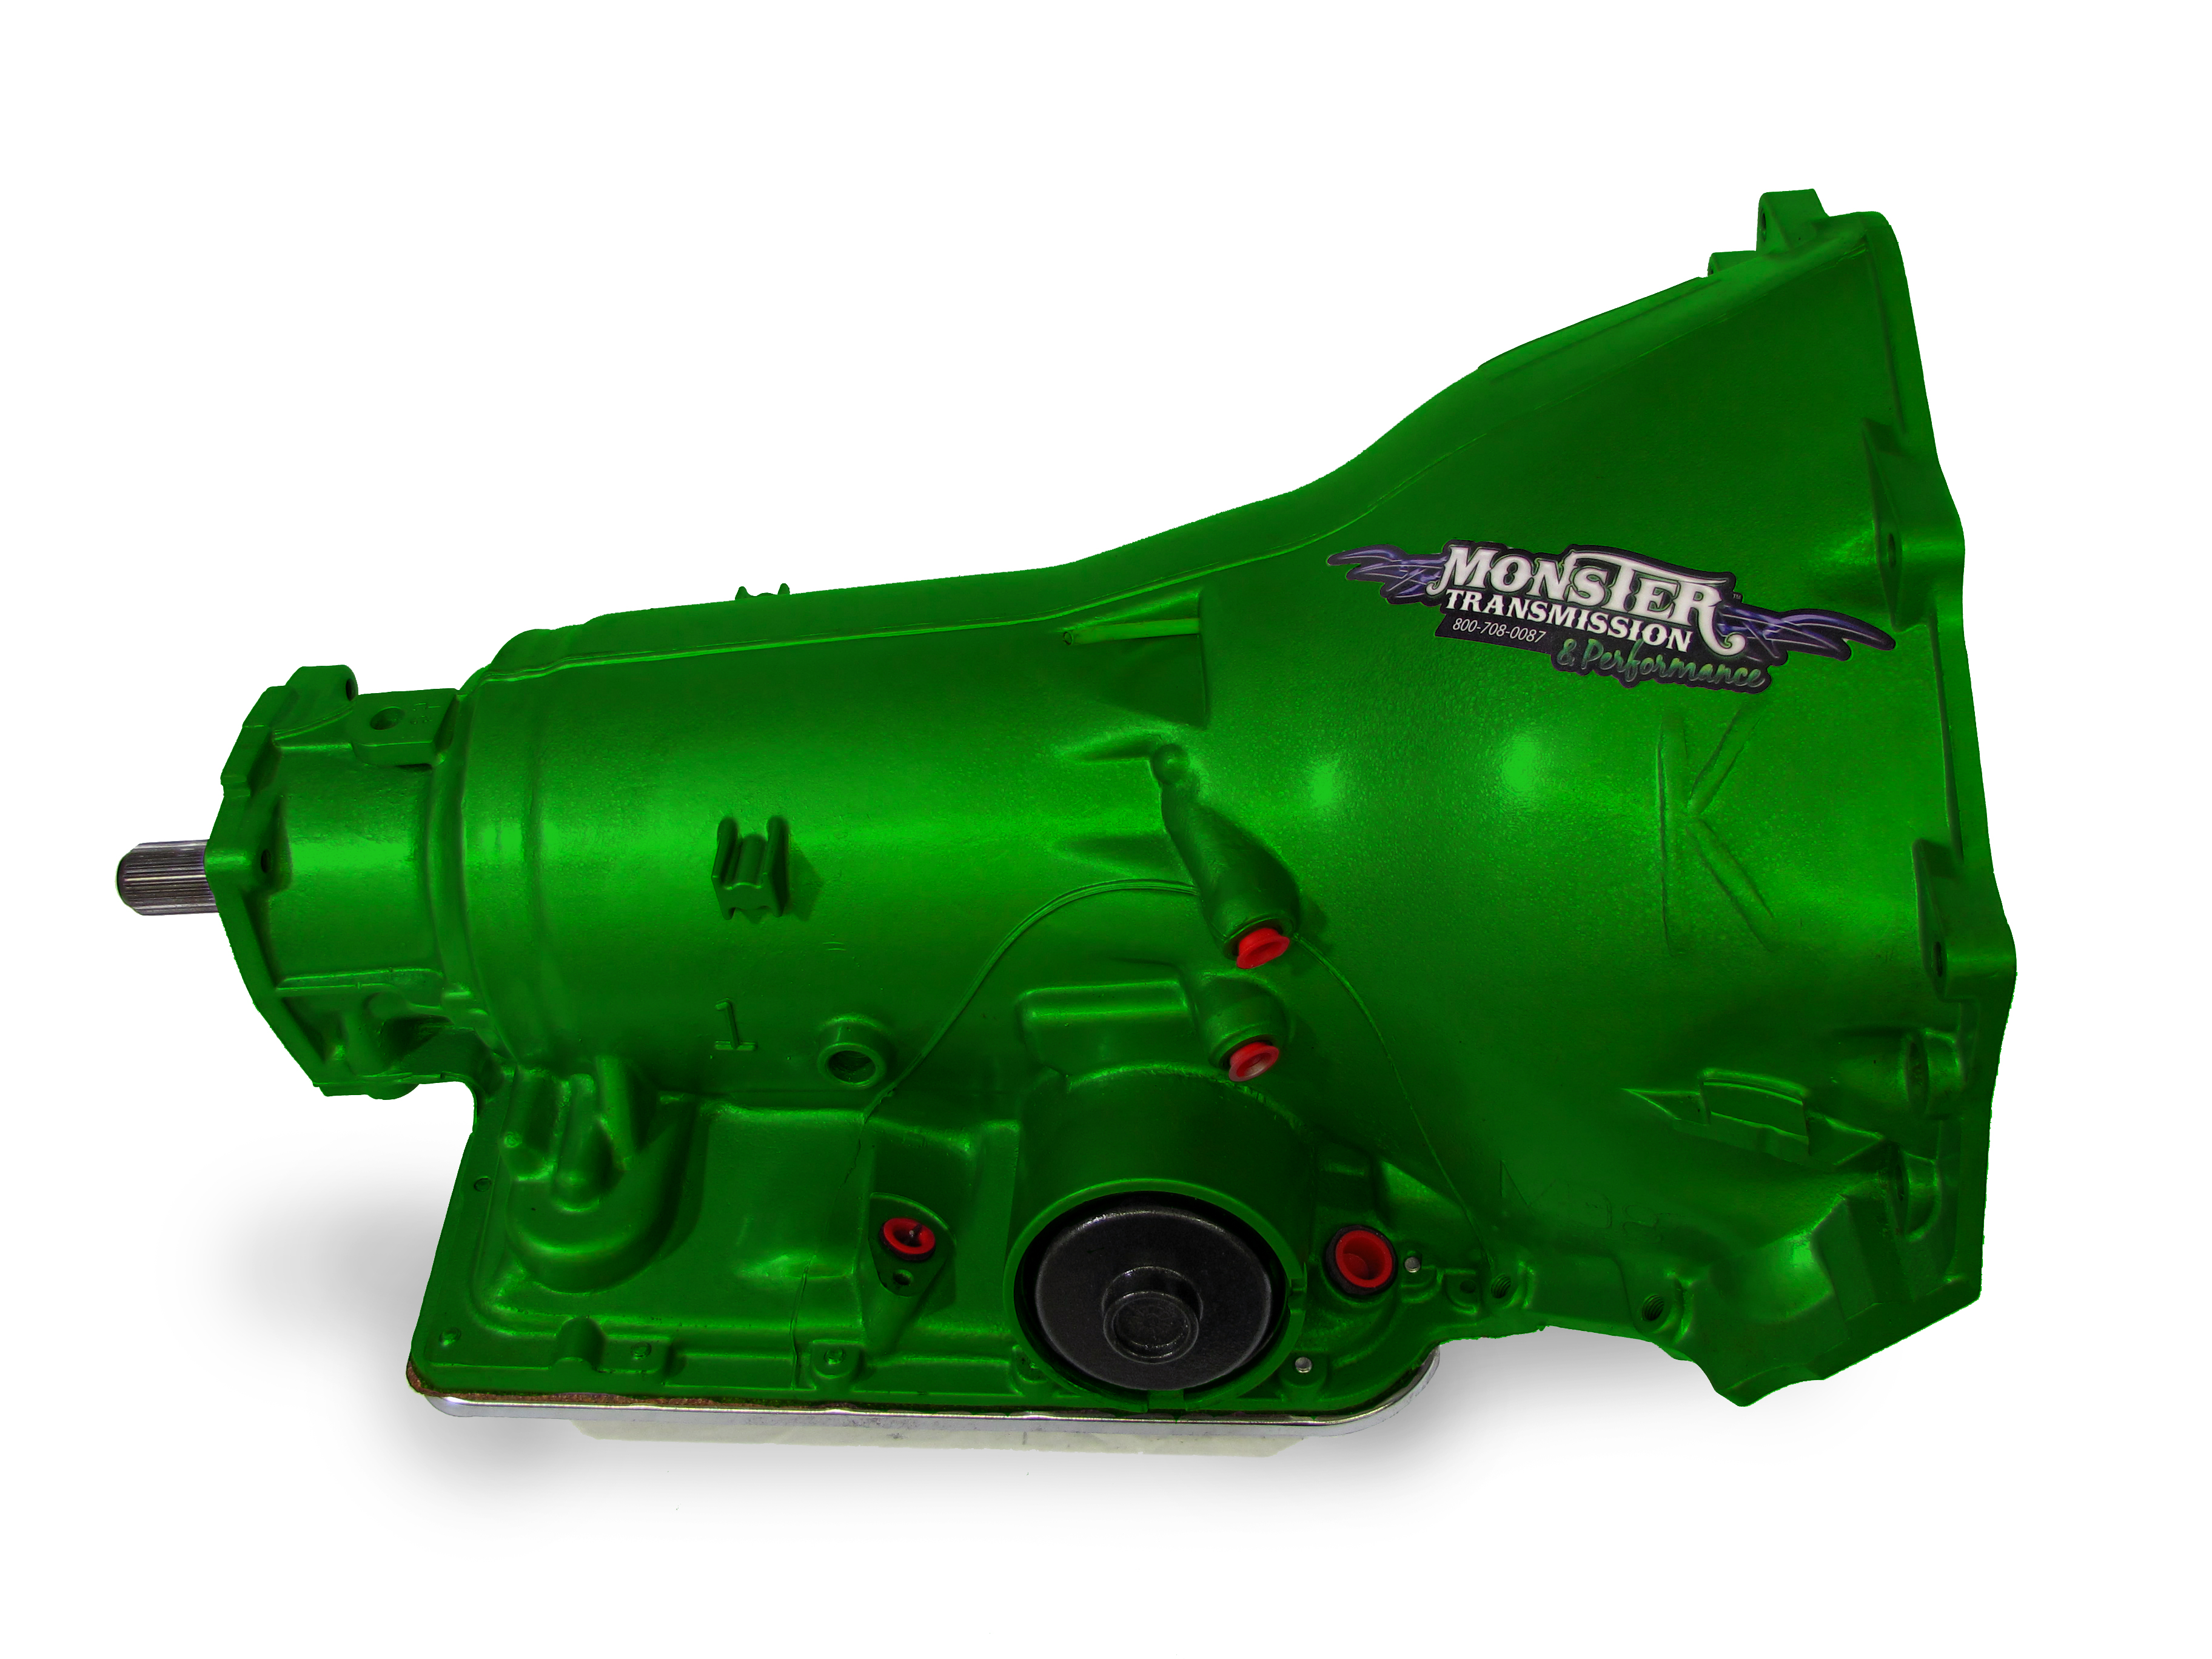 700r4 transmission stock unit other colors available colors shades my vary